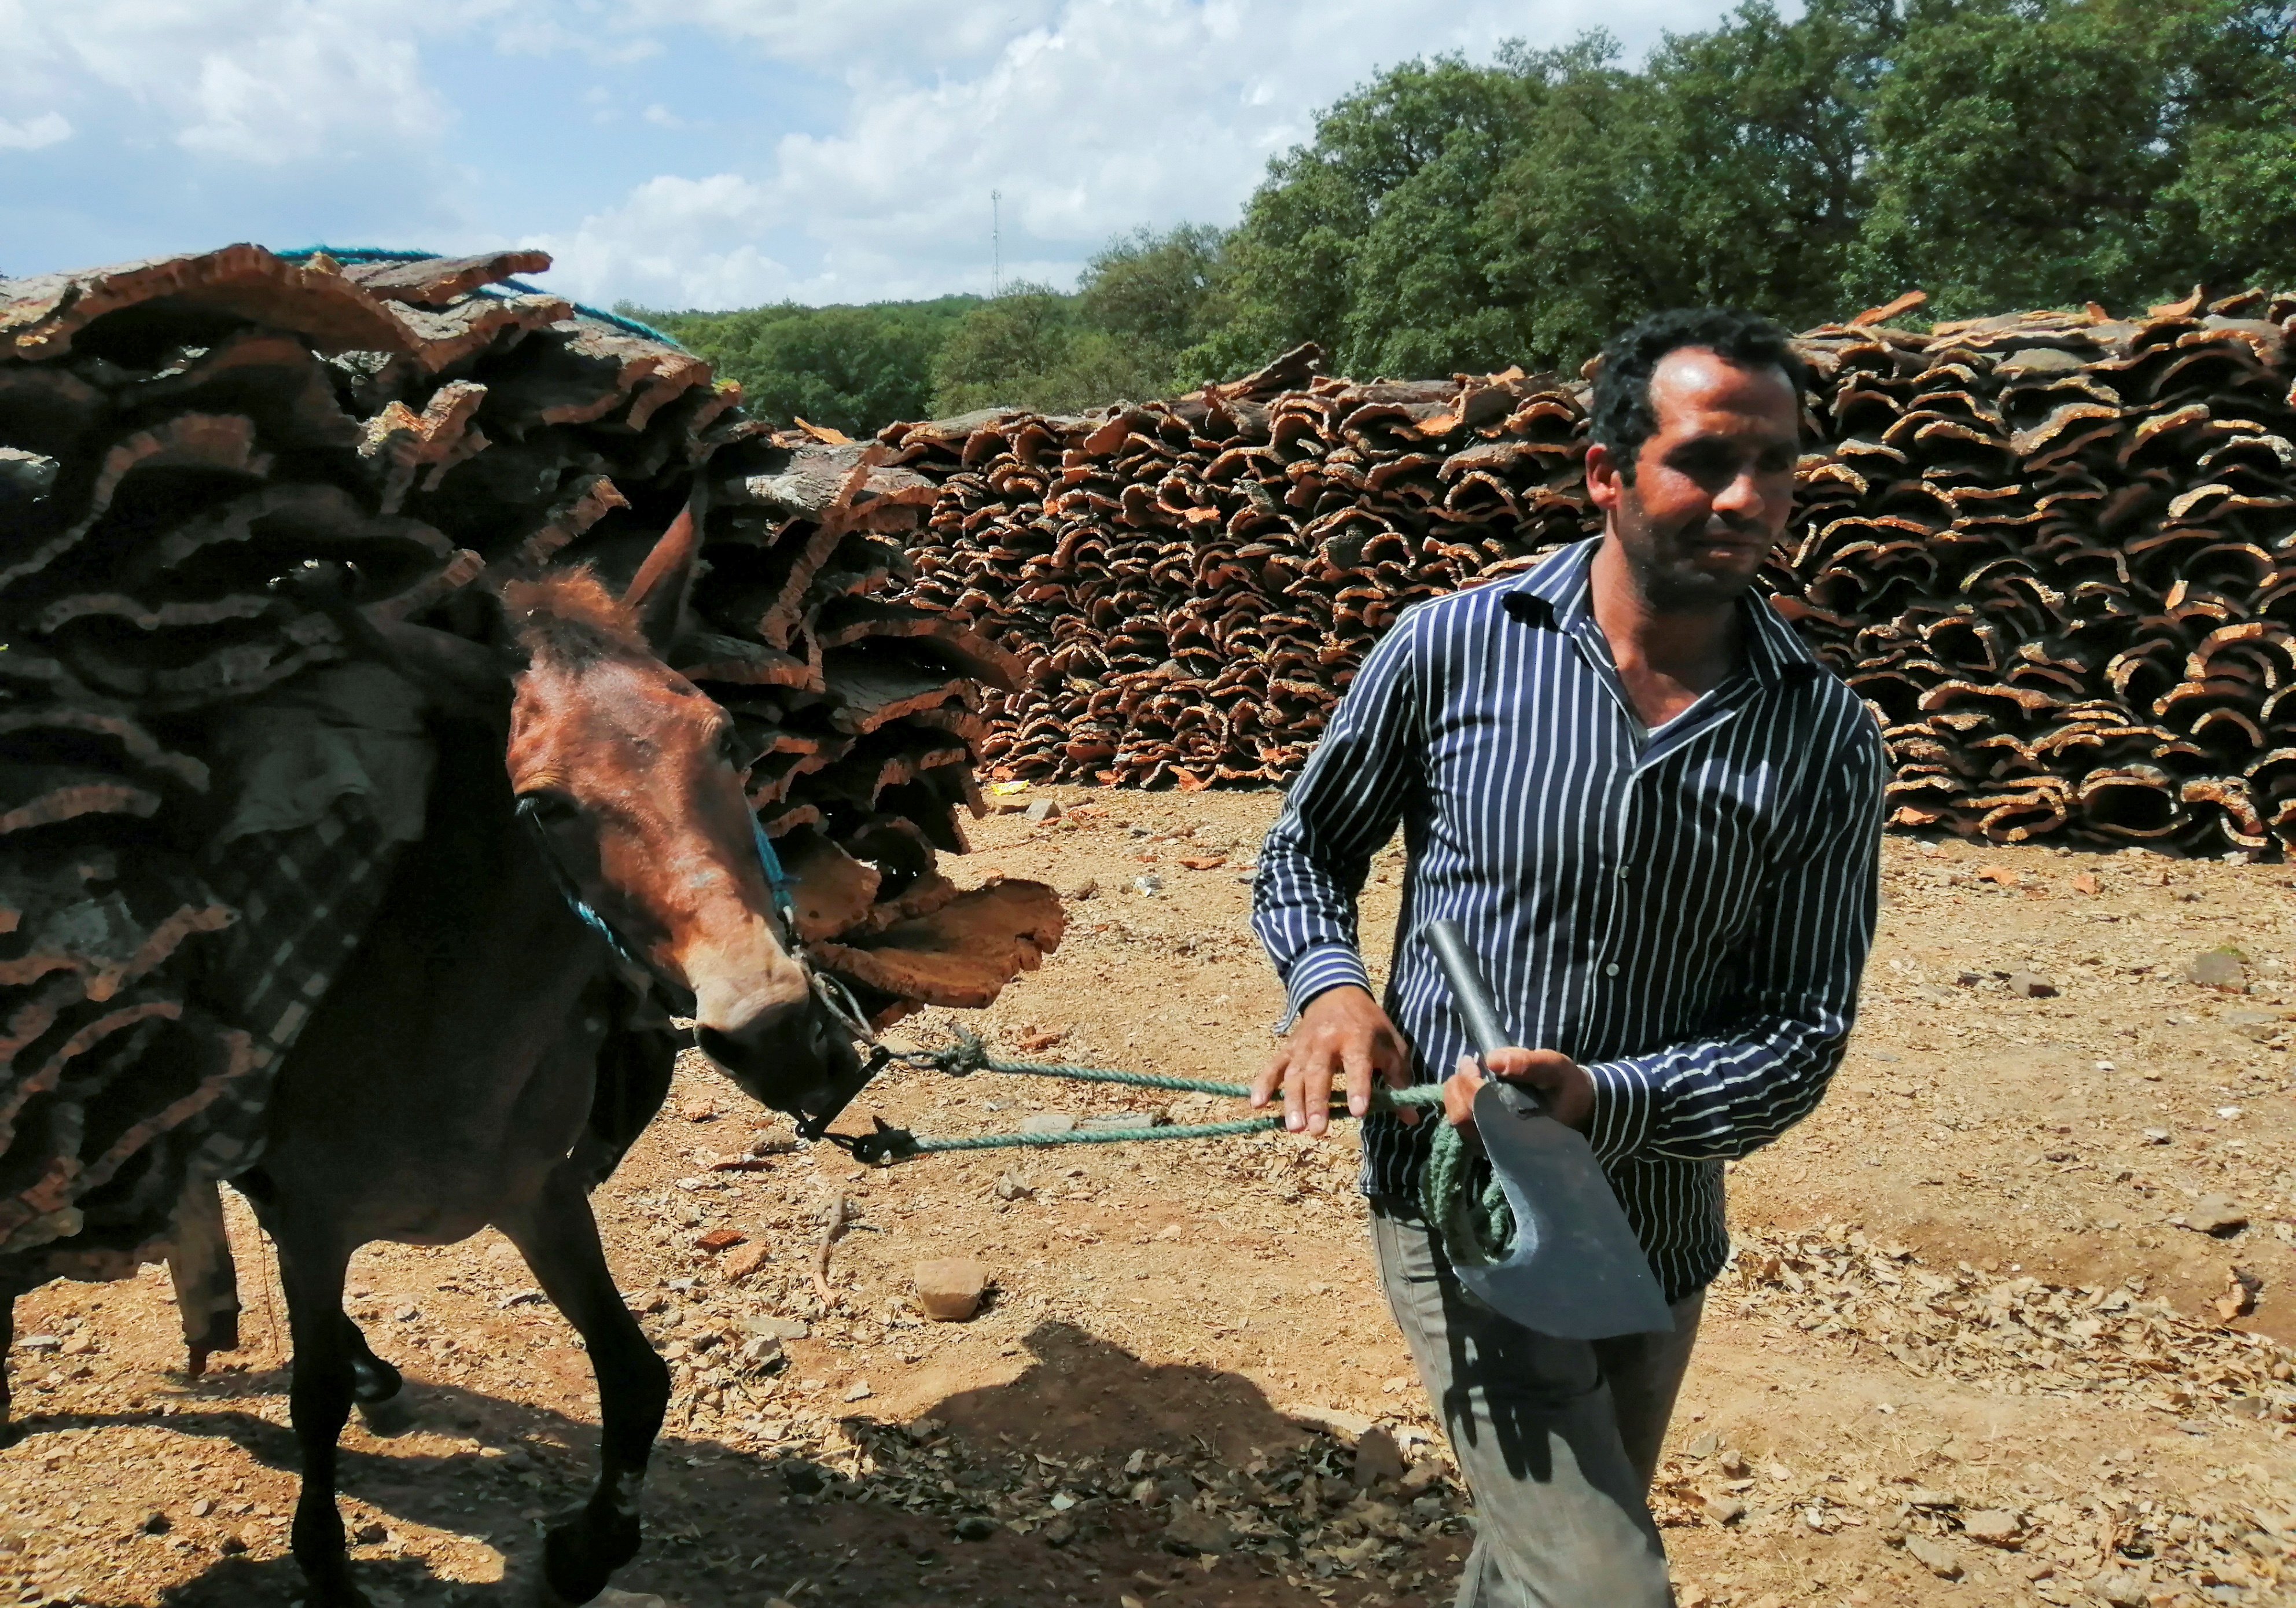 Cork collector, Khaled Warhani, walks with his donkey carrying harvested pieces of cork in Ain Draham, Jendouba, Tunisia, September 10, 2021. Picture taken September 10, 2021. REUTERS/Jihed Abidellaoui